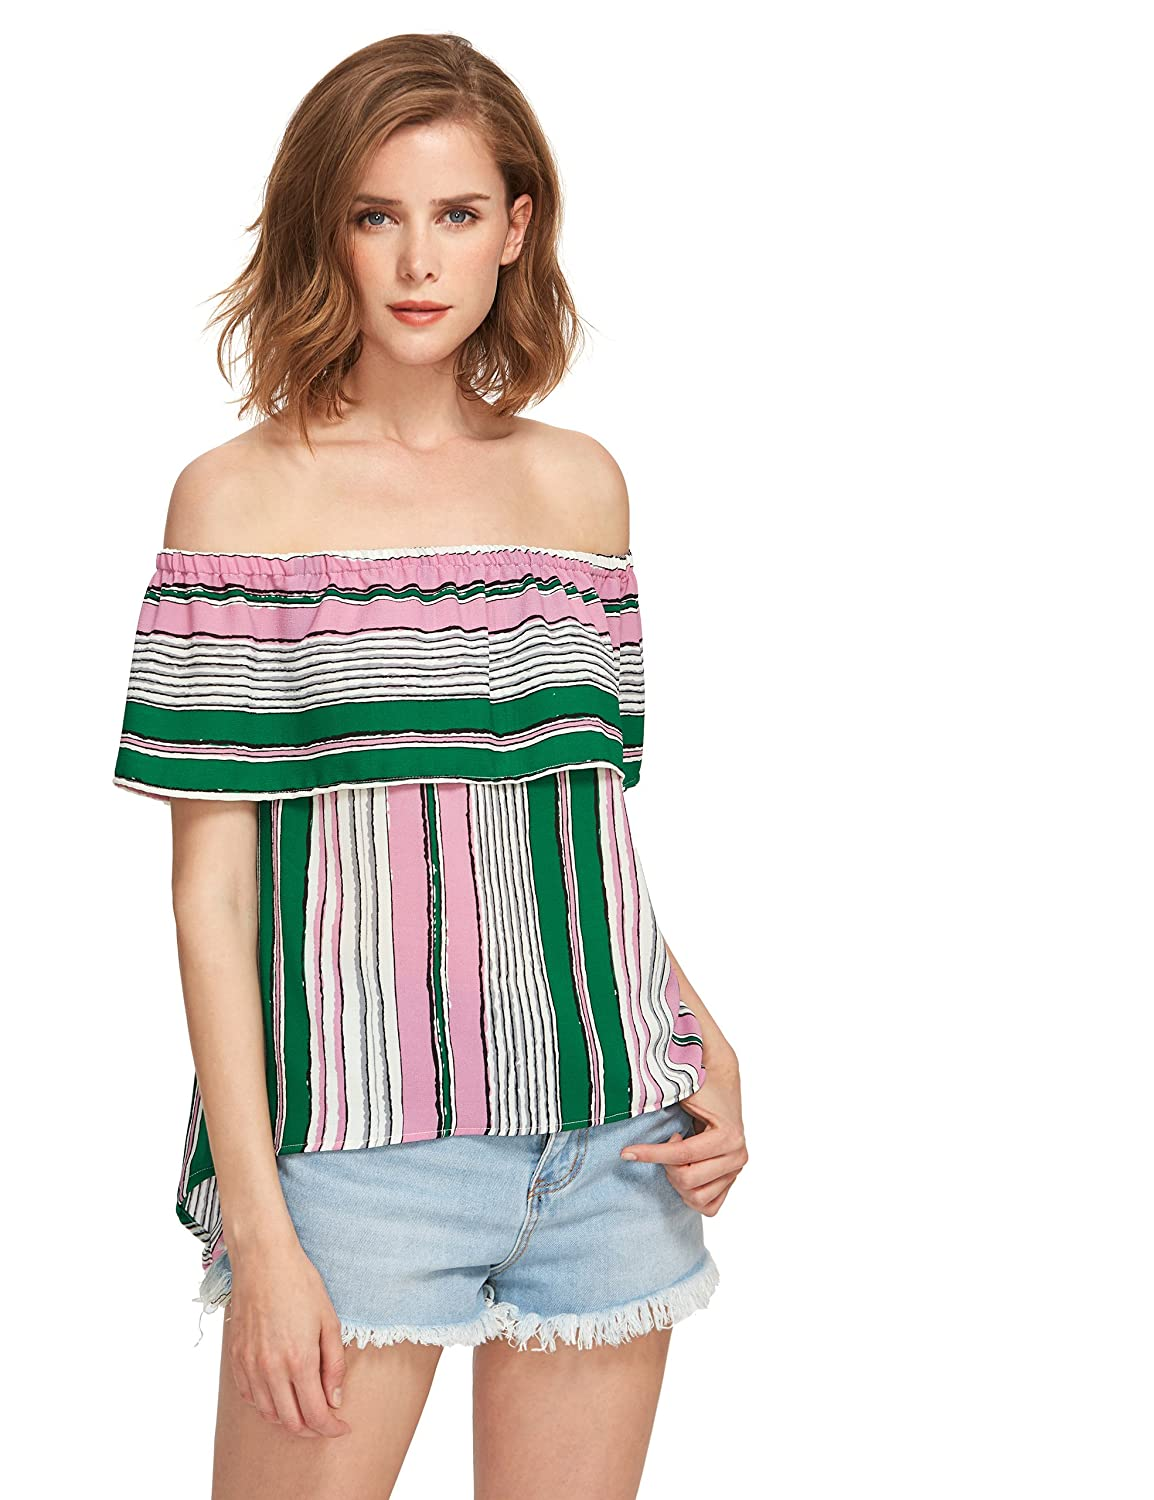 d09367347f Amazon.com: ROMWE Women's Blouse off the shoulder Striped Ruffle summer  casual tunic tops Multicolor XS: Clothing